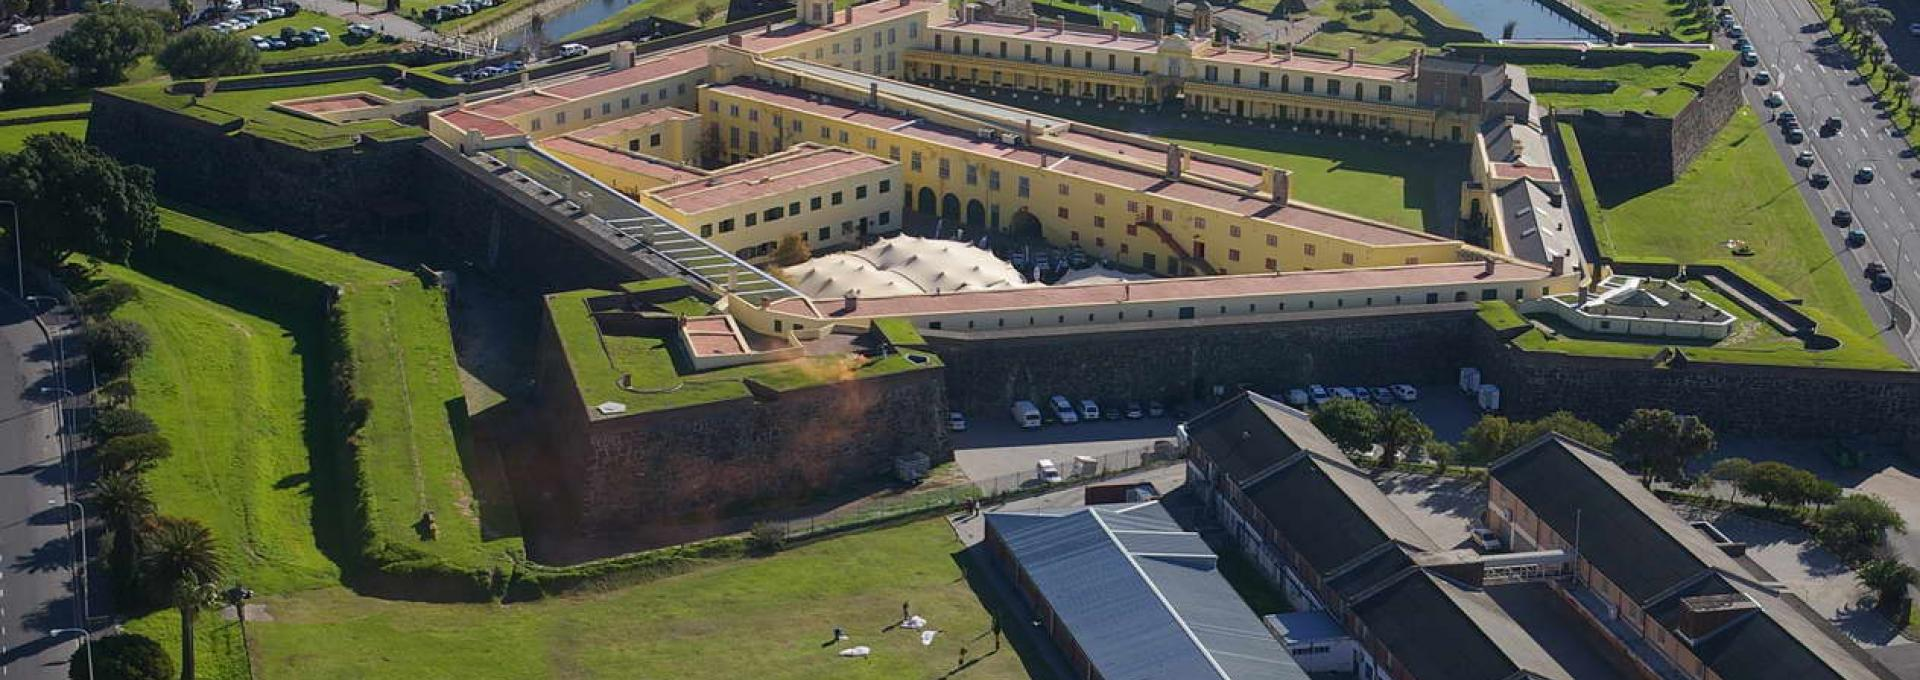 The Castle of Good Hope 1